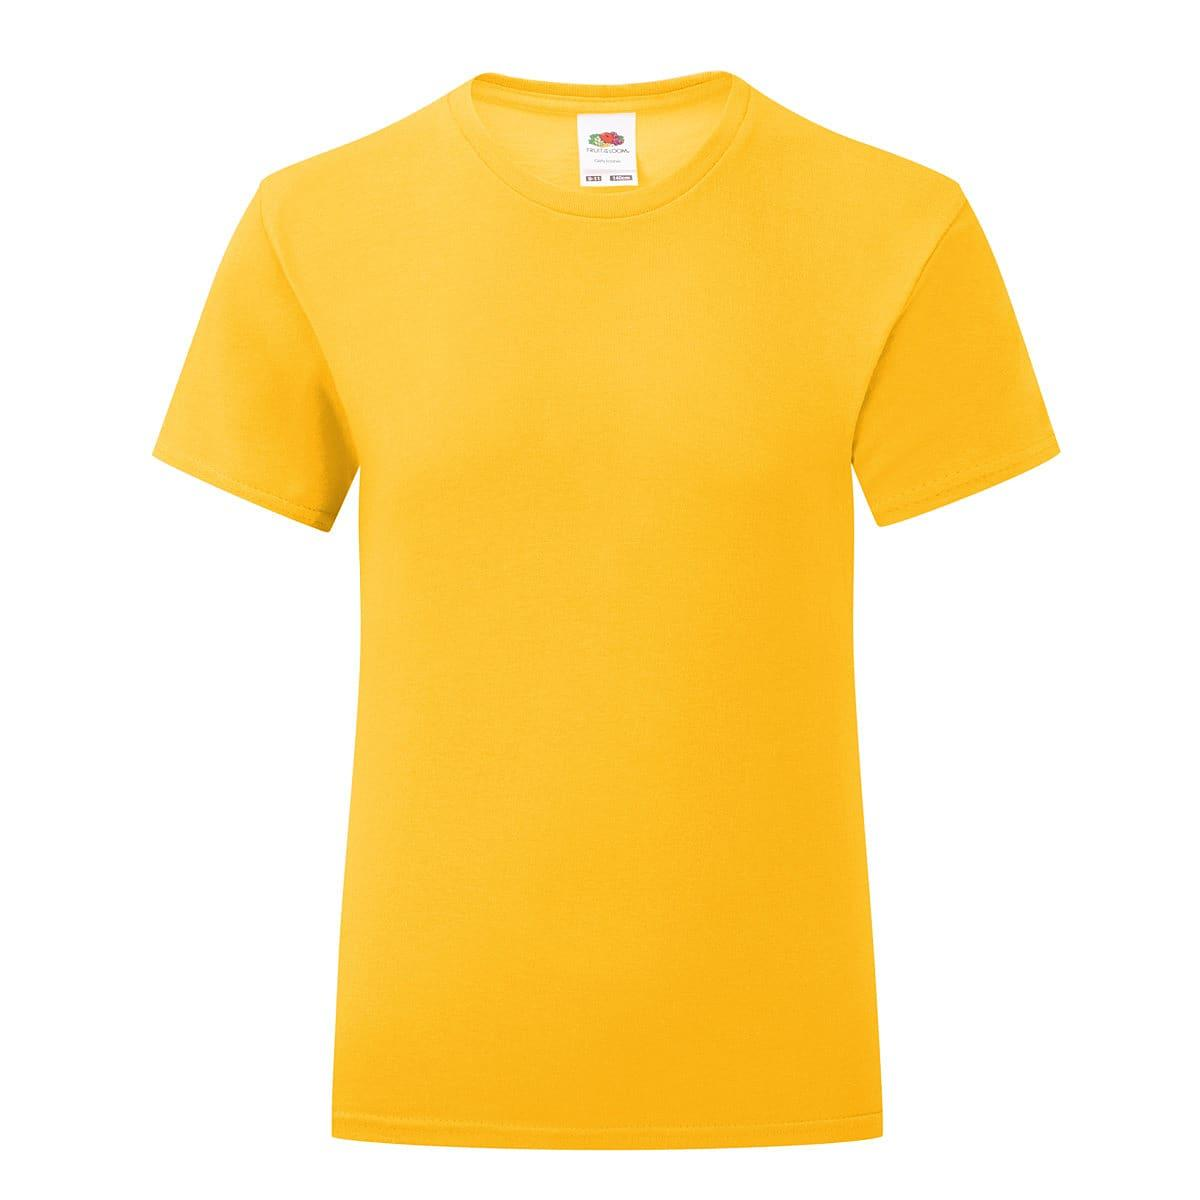 Fruit Of The Loom Girls Iconic T-Shirt in Sunflower (Product Code: 61025)